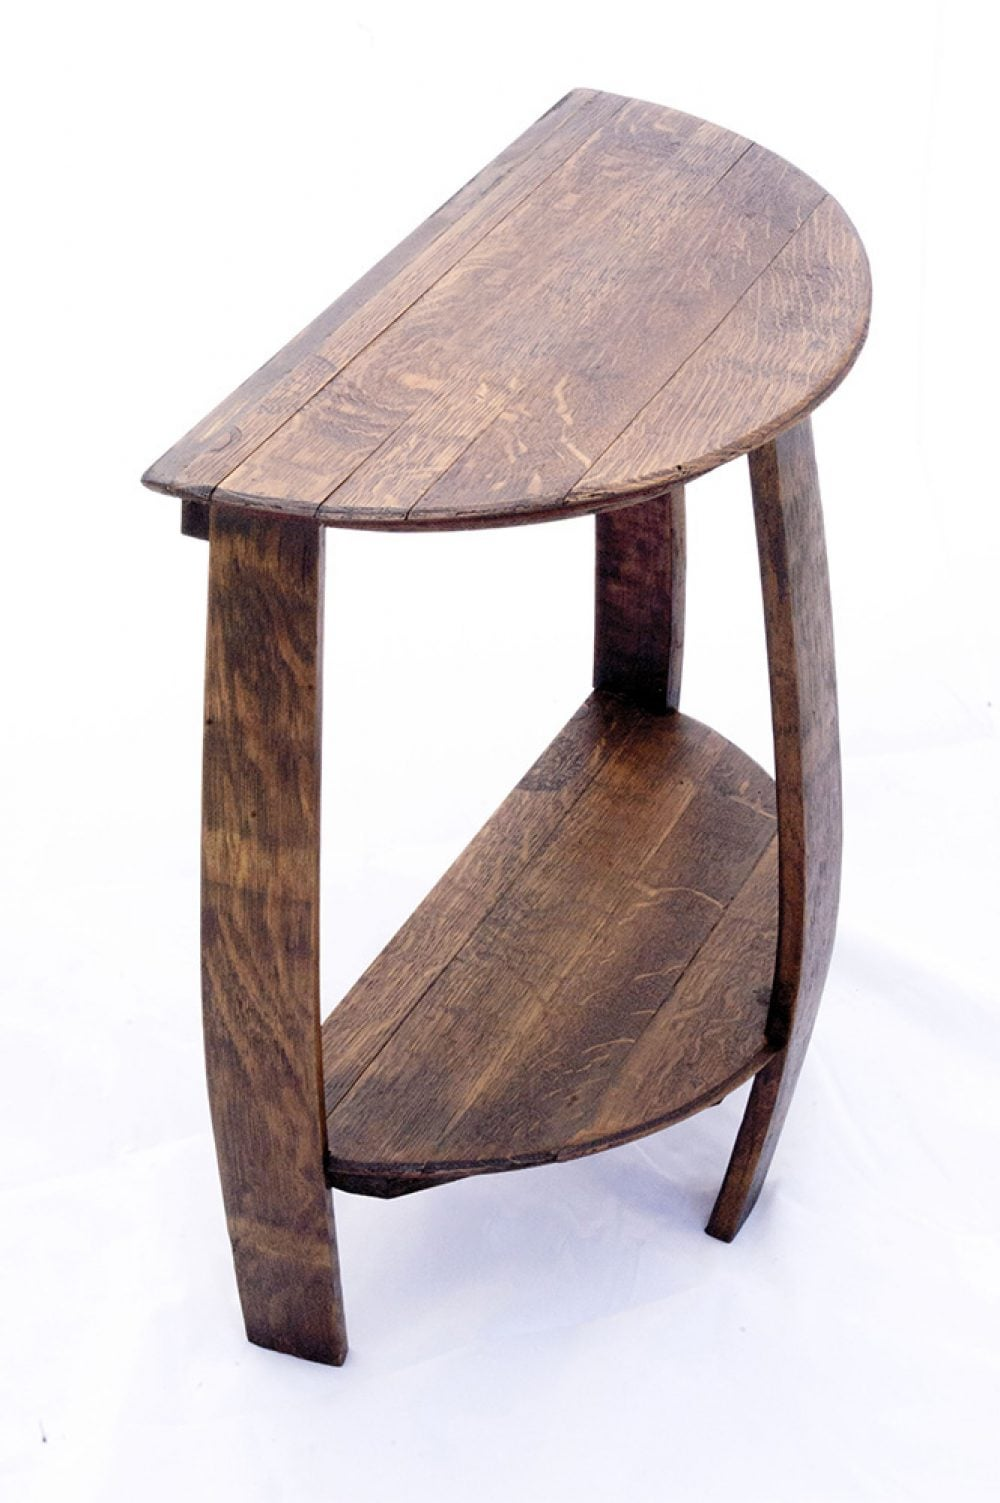 Pleasing Wine Barrel Half Round End Table Machost Co Dining Chair Design Ideas Machostcouk